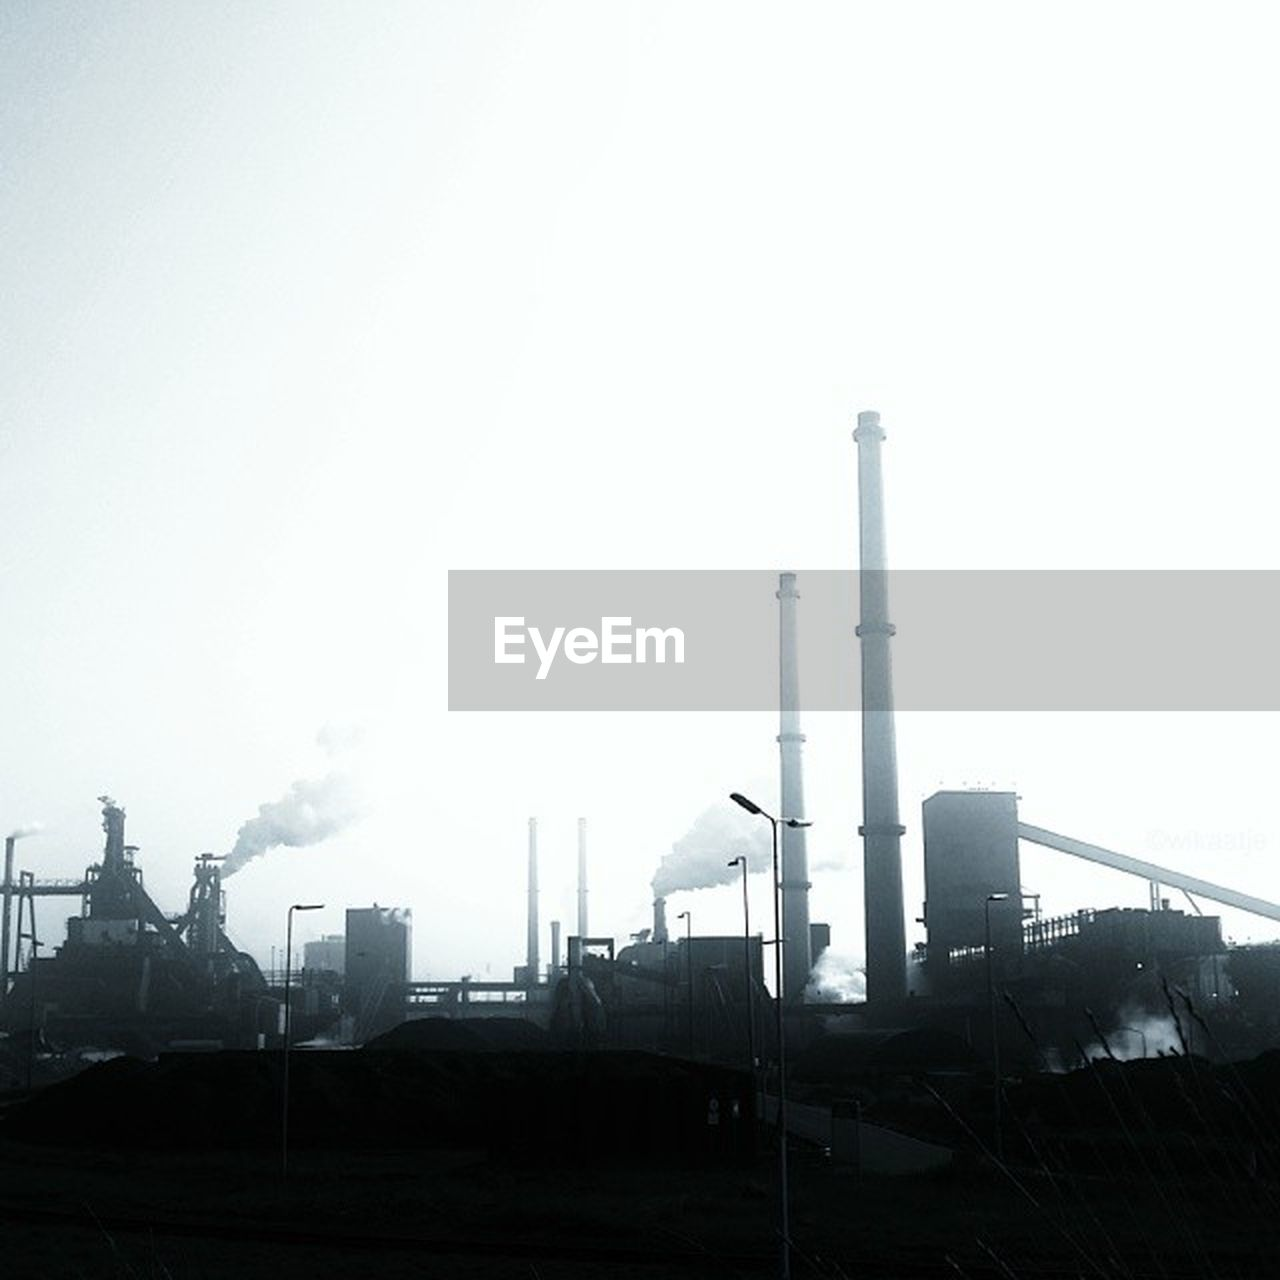 industry, factory, smoke stack, built structure, architecture, building exterior, fuel and power generation, clear sky, sky, day, no people, power station, chimney, fumes, outdoors